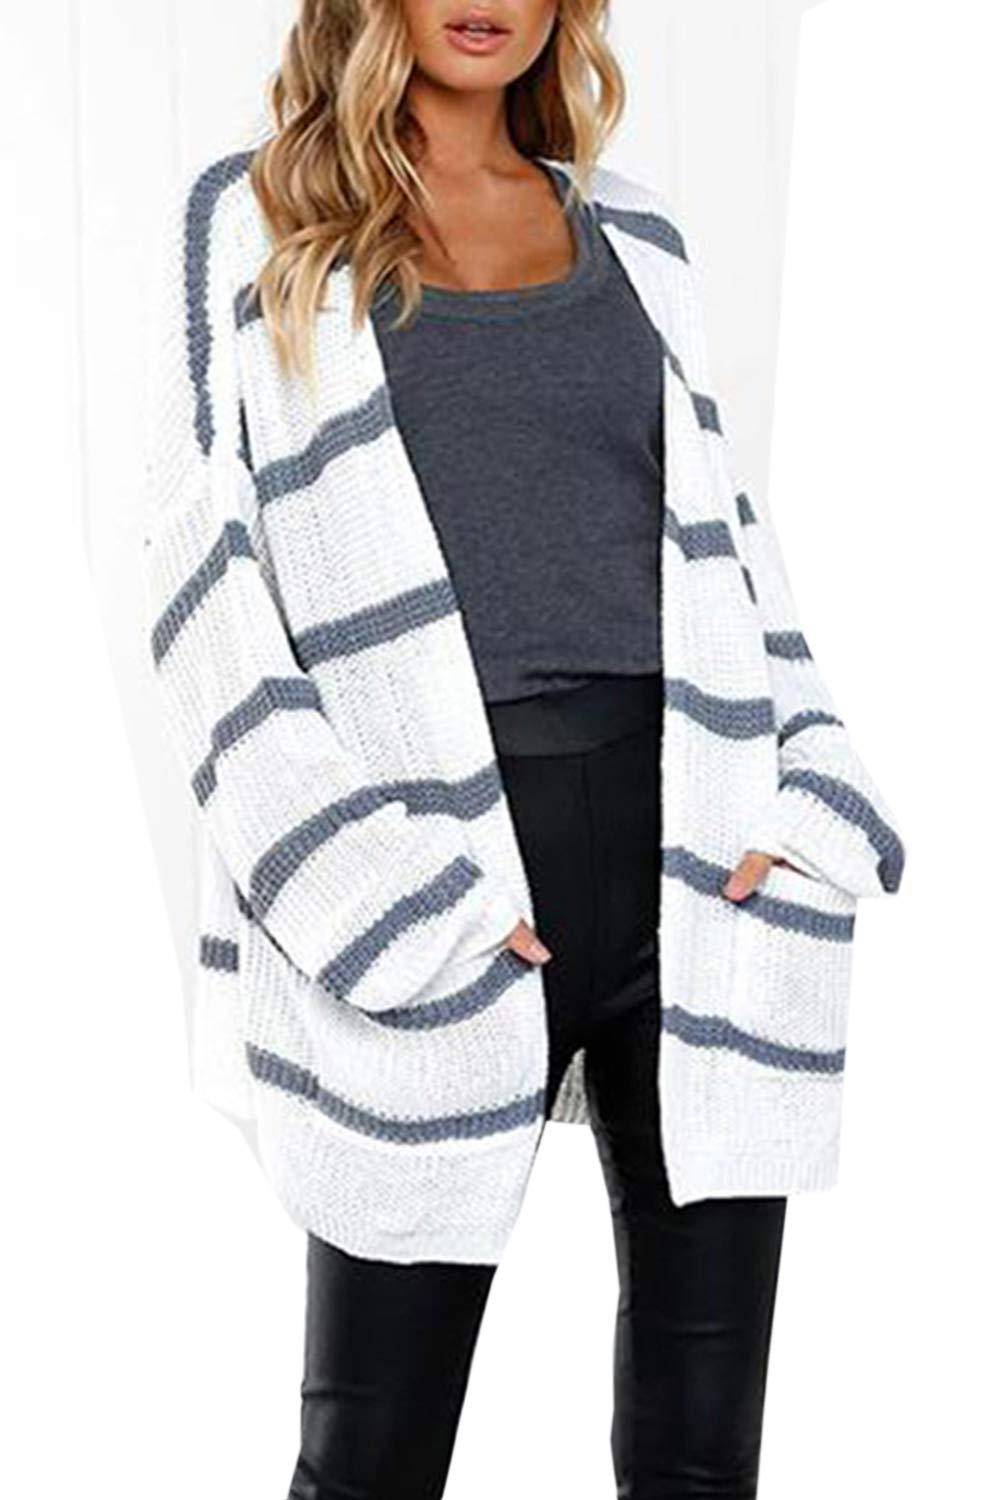 Befily Womens Boho Open Front Long Cardigan Sweaters Casual Loose Striped Pullover Sweater with Pockets (White, X-Large)